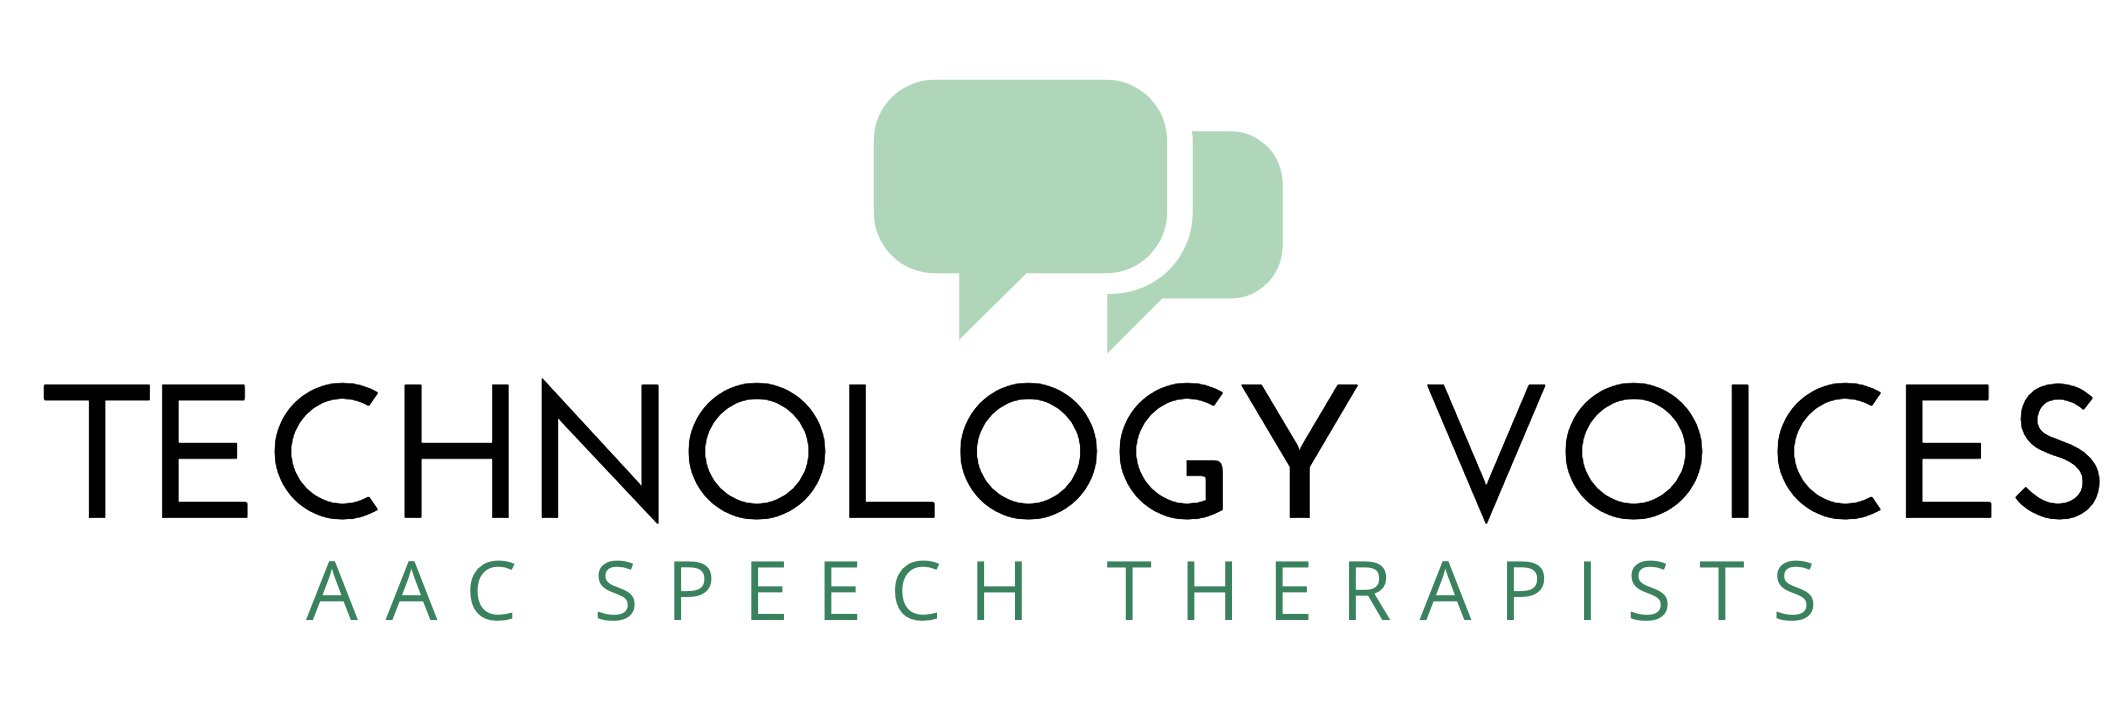 Technology Voices